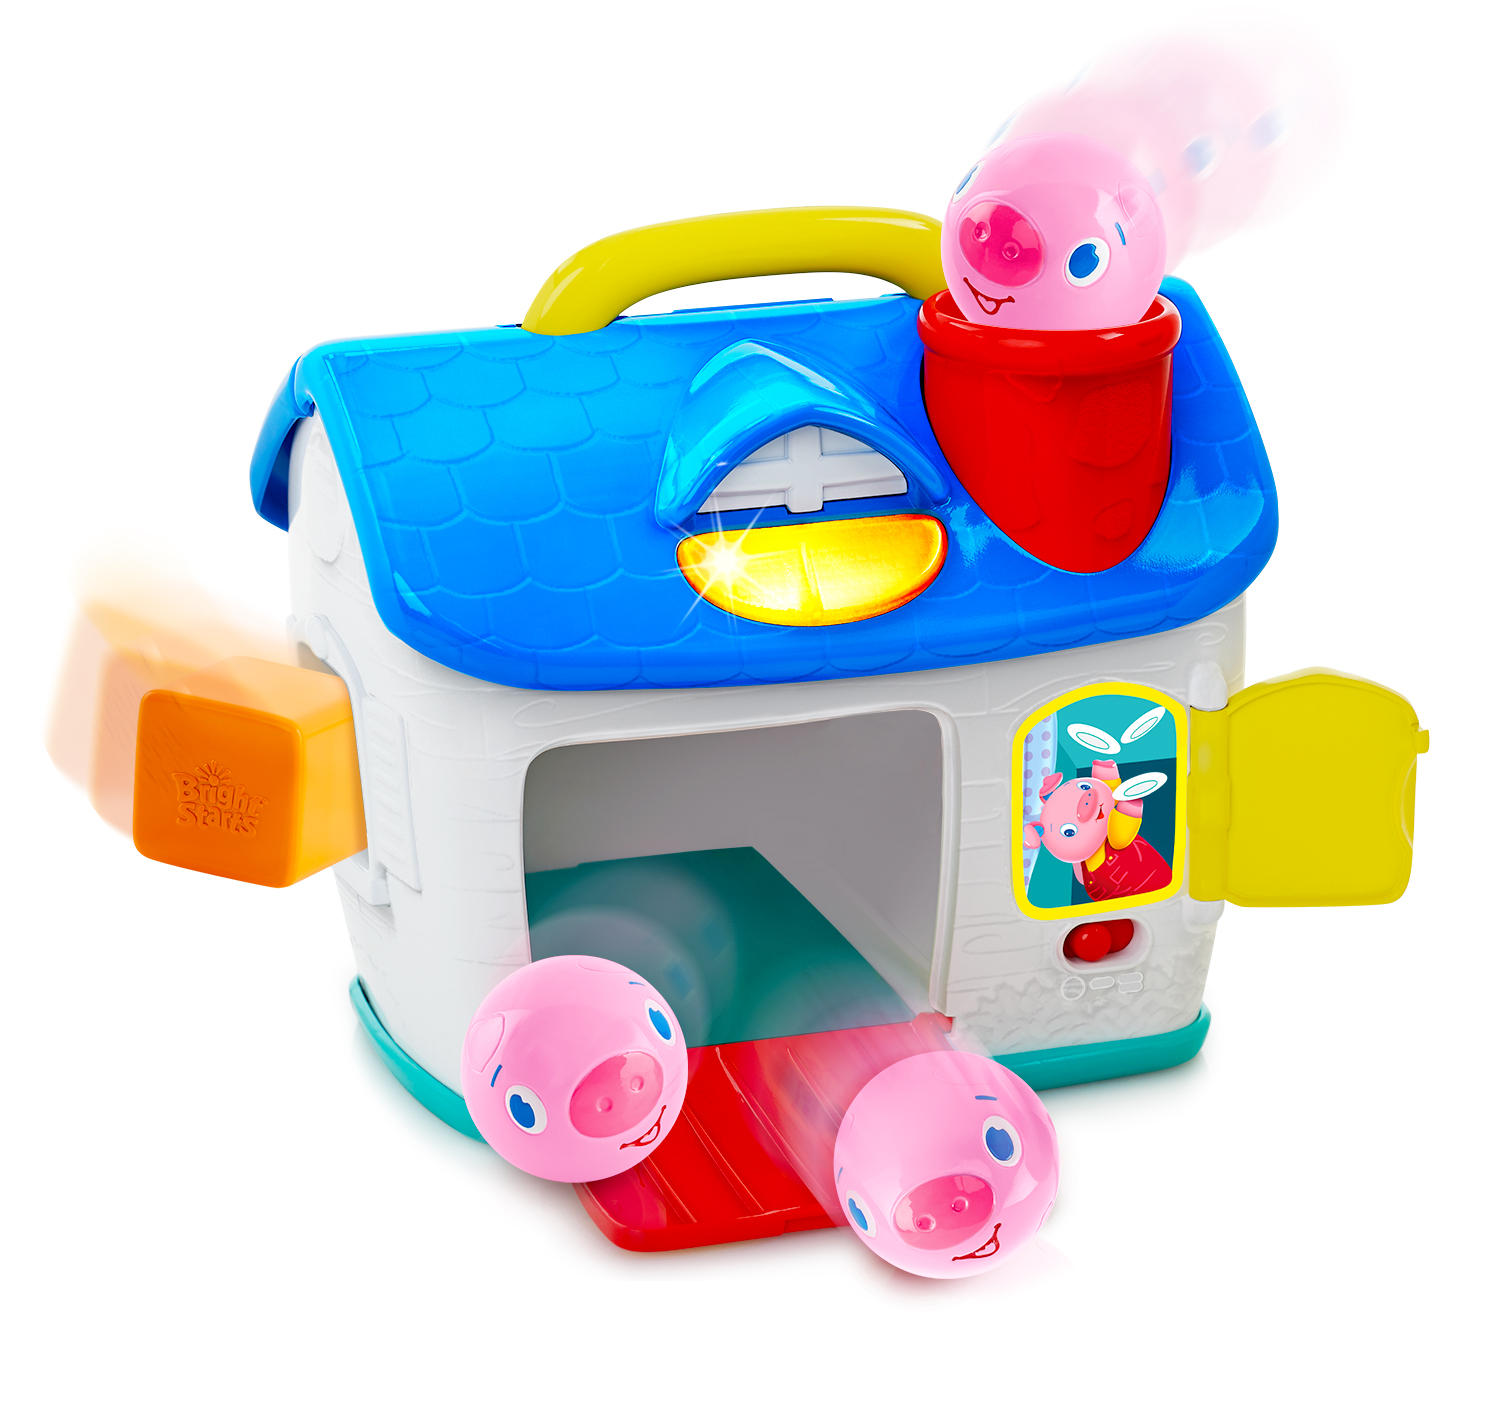 3 Lil' Piggies' Play House™